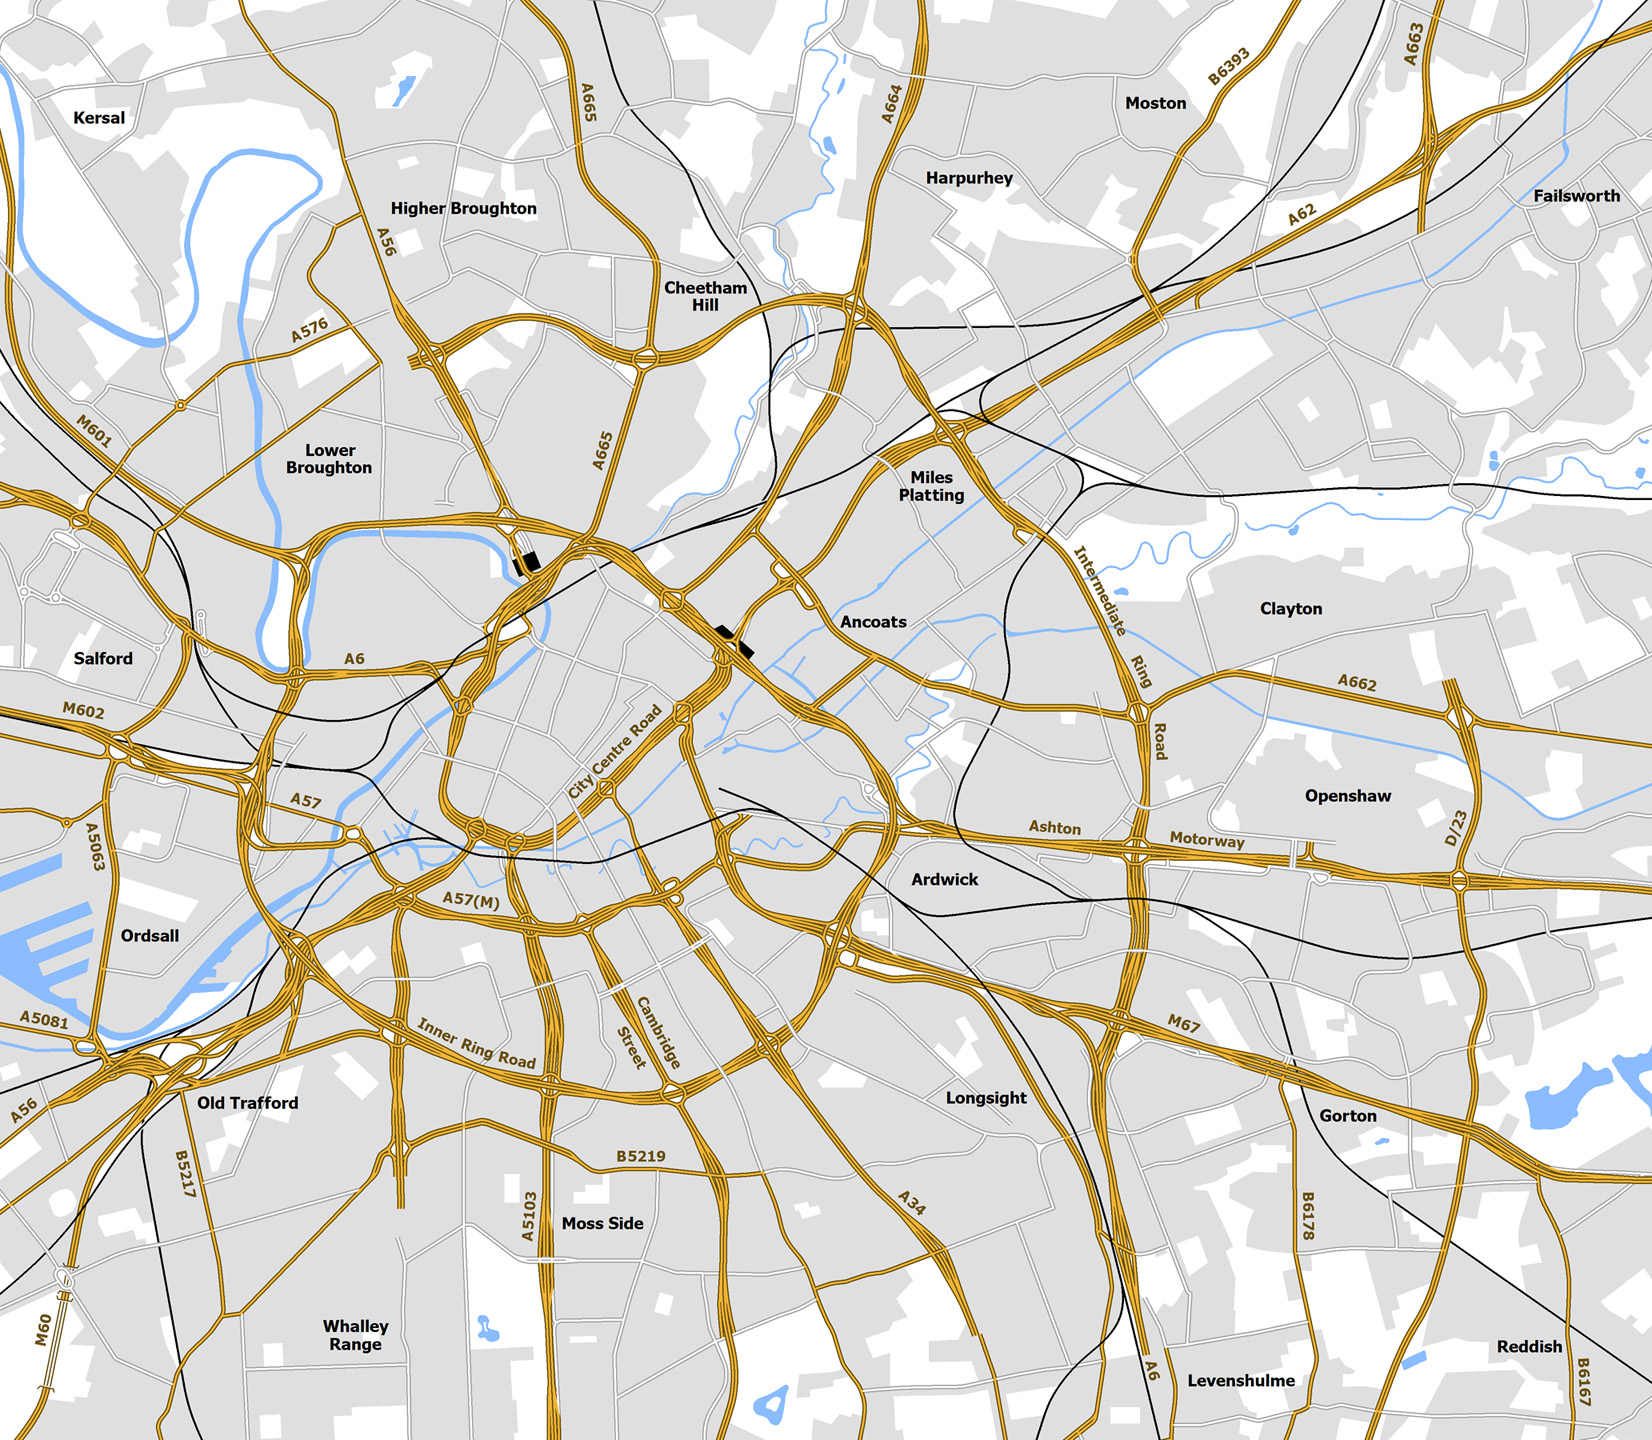 S Manchester More Ringways Than London SABRE - London map manchester